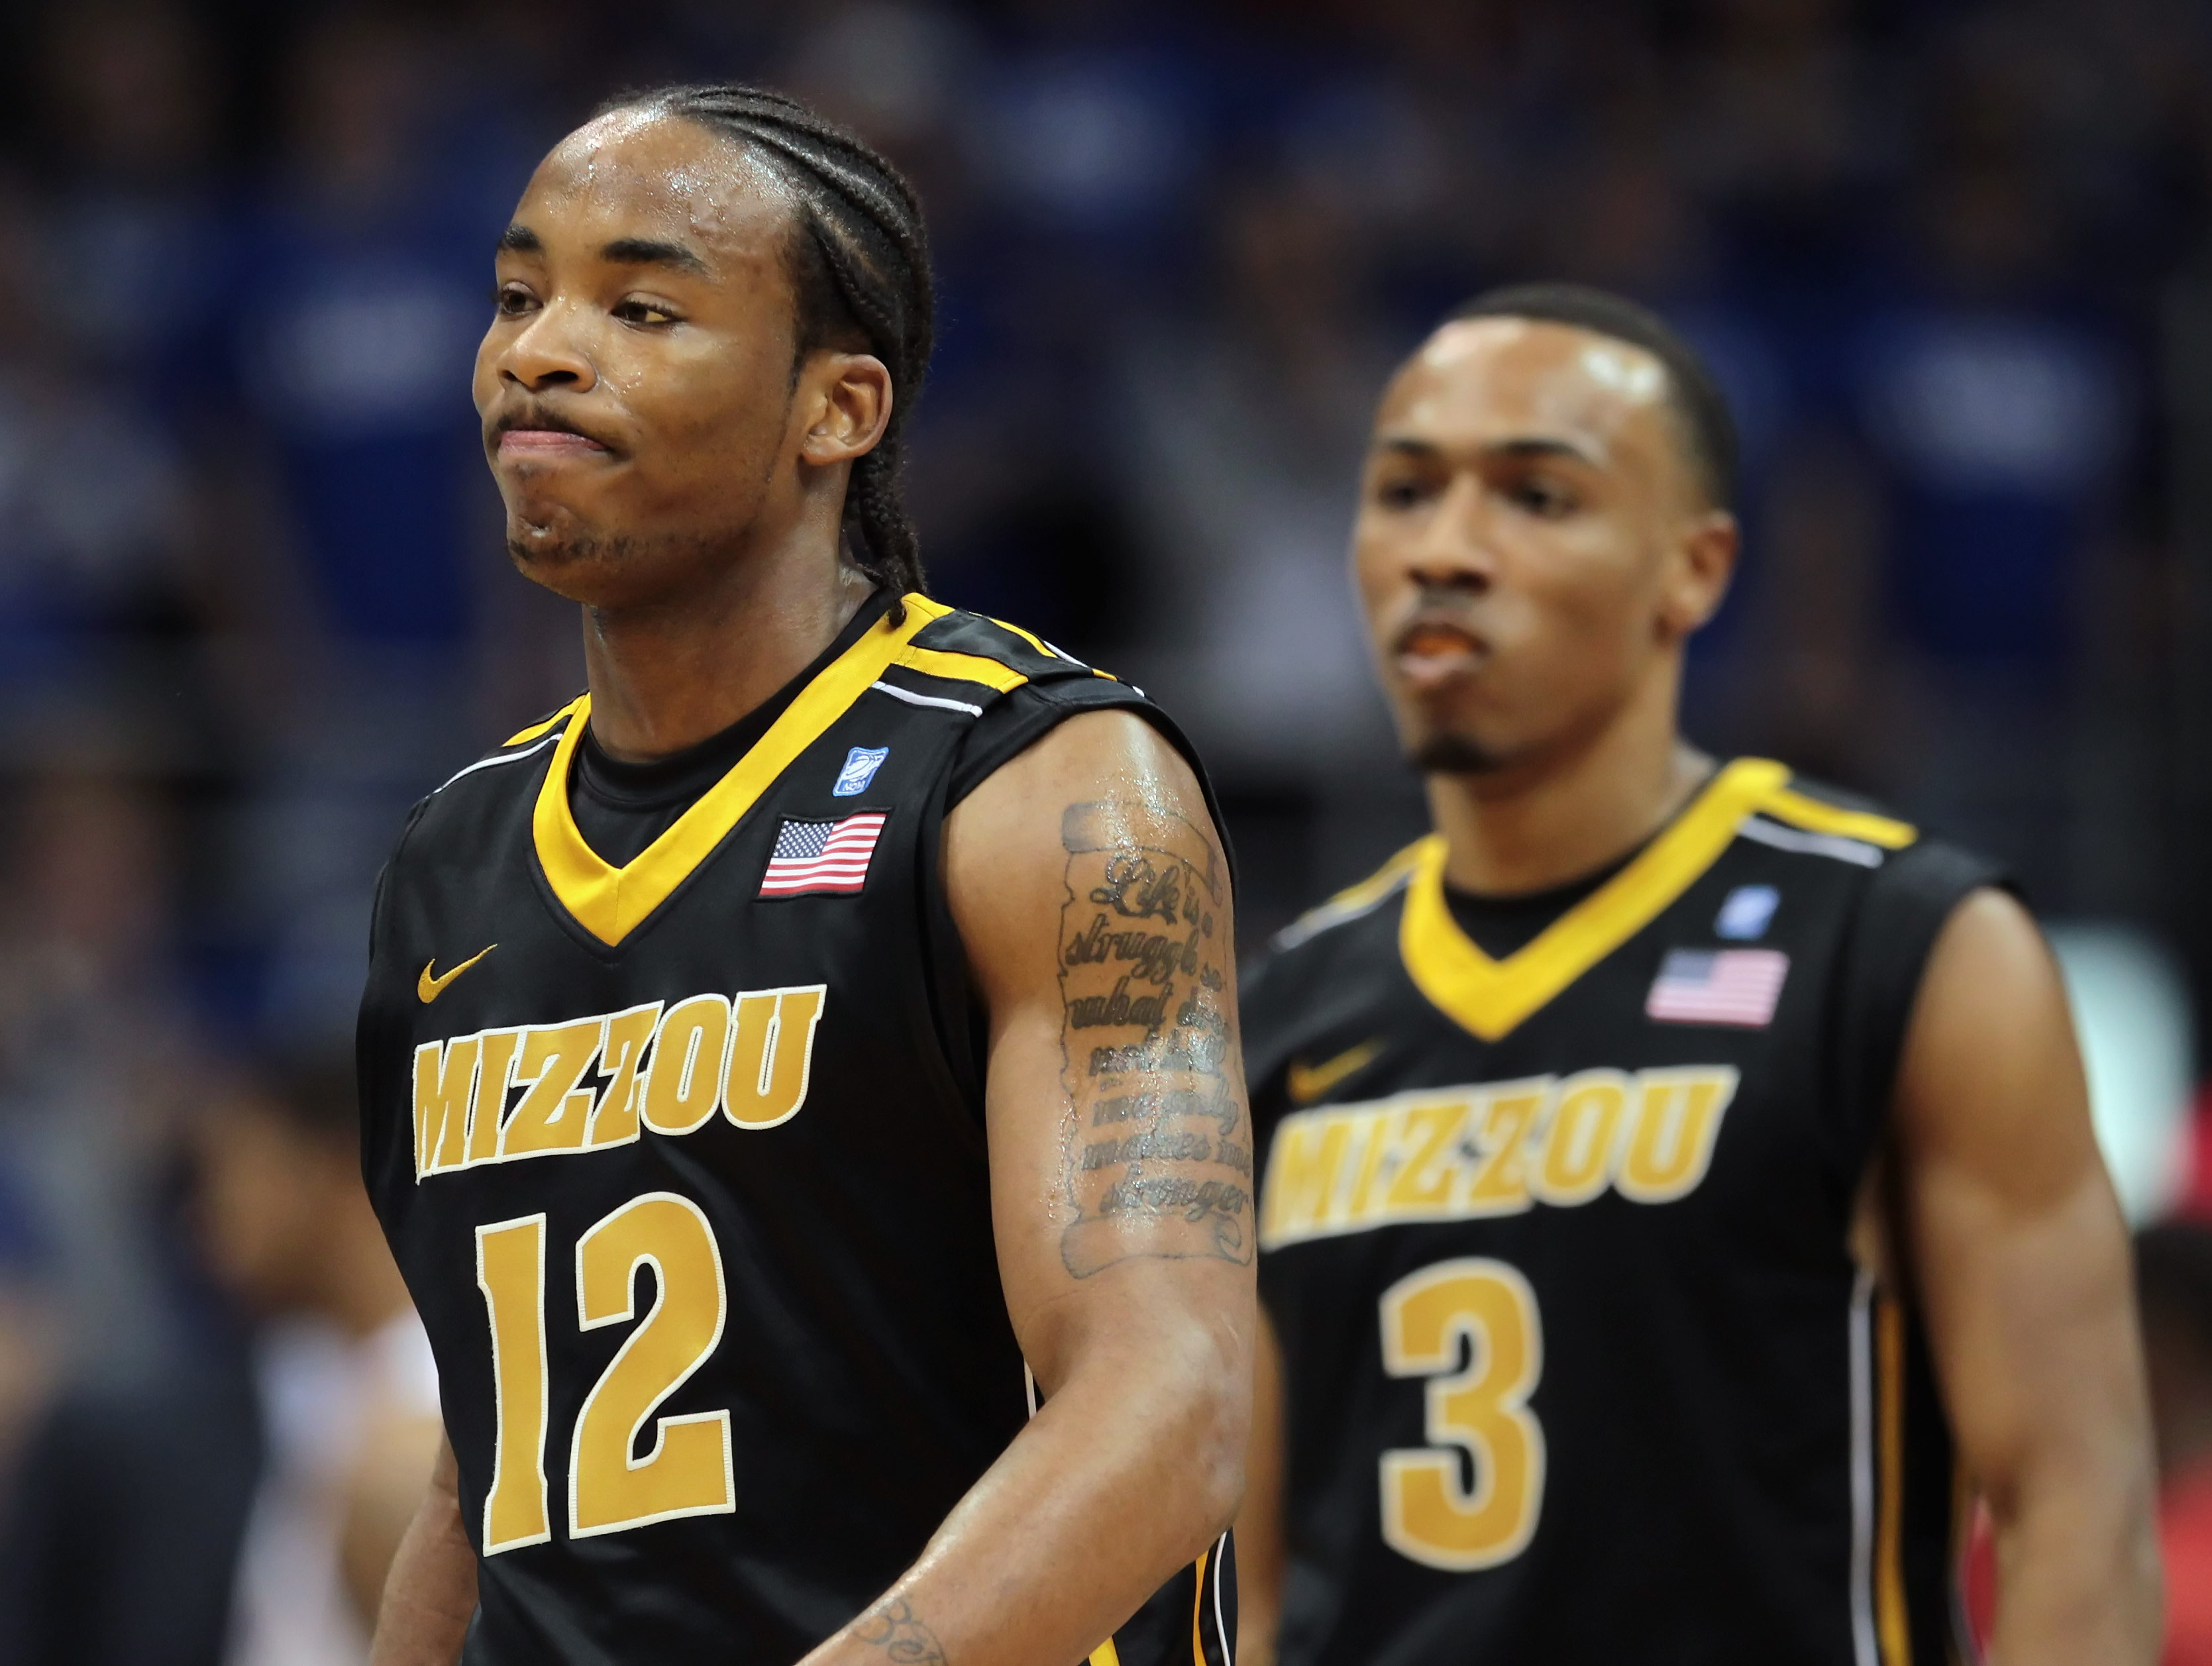 LAWRENCE, KS - FEBRUARY 07:  Marcus Denmon #12 and Matt Pressey #3 of the Missouri Tigers reacts after a foul during the game against the Kansas Jayhawks on February 5, 2011 at Allen Fieldhouse in Lawrence, Kansas.  (Photo by Jamie Squire/Getty Images)